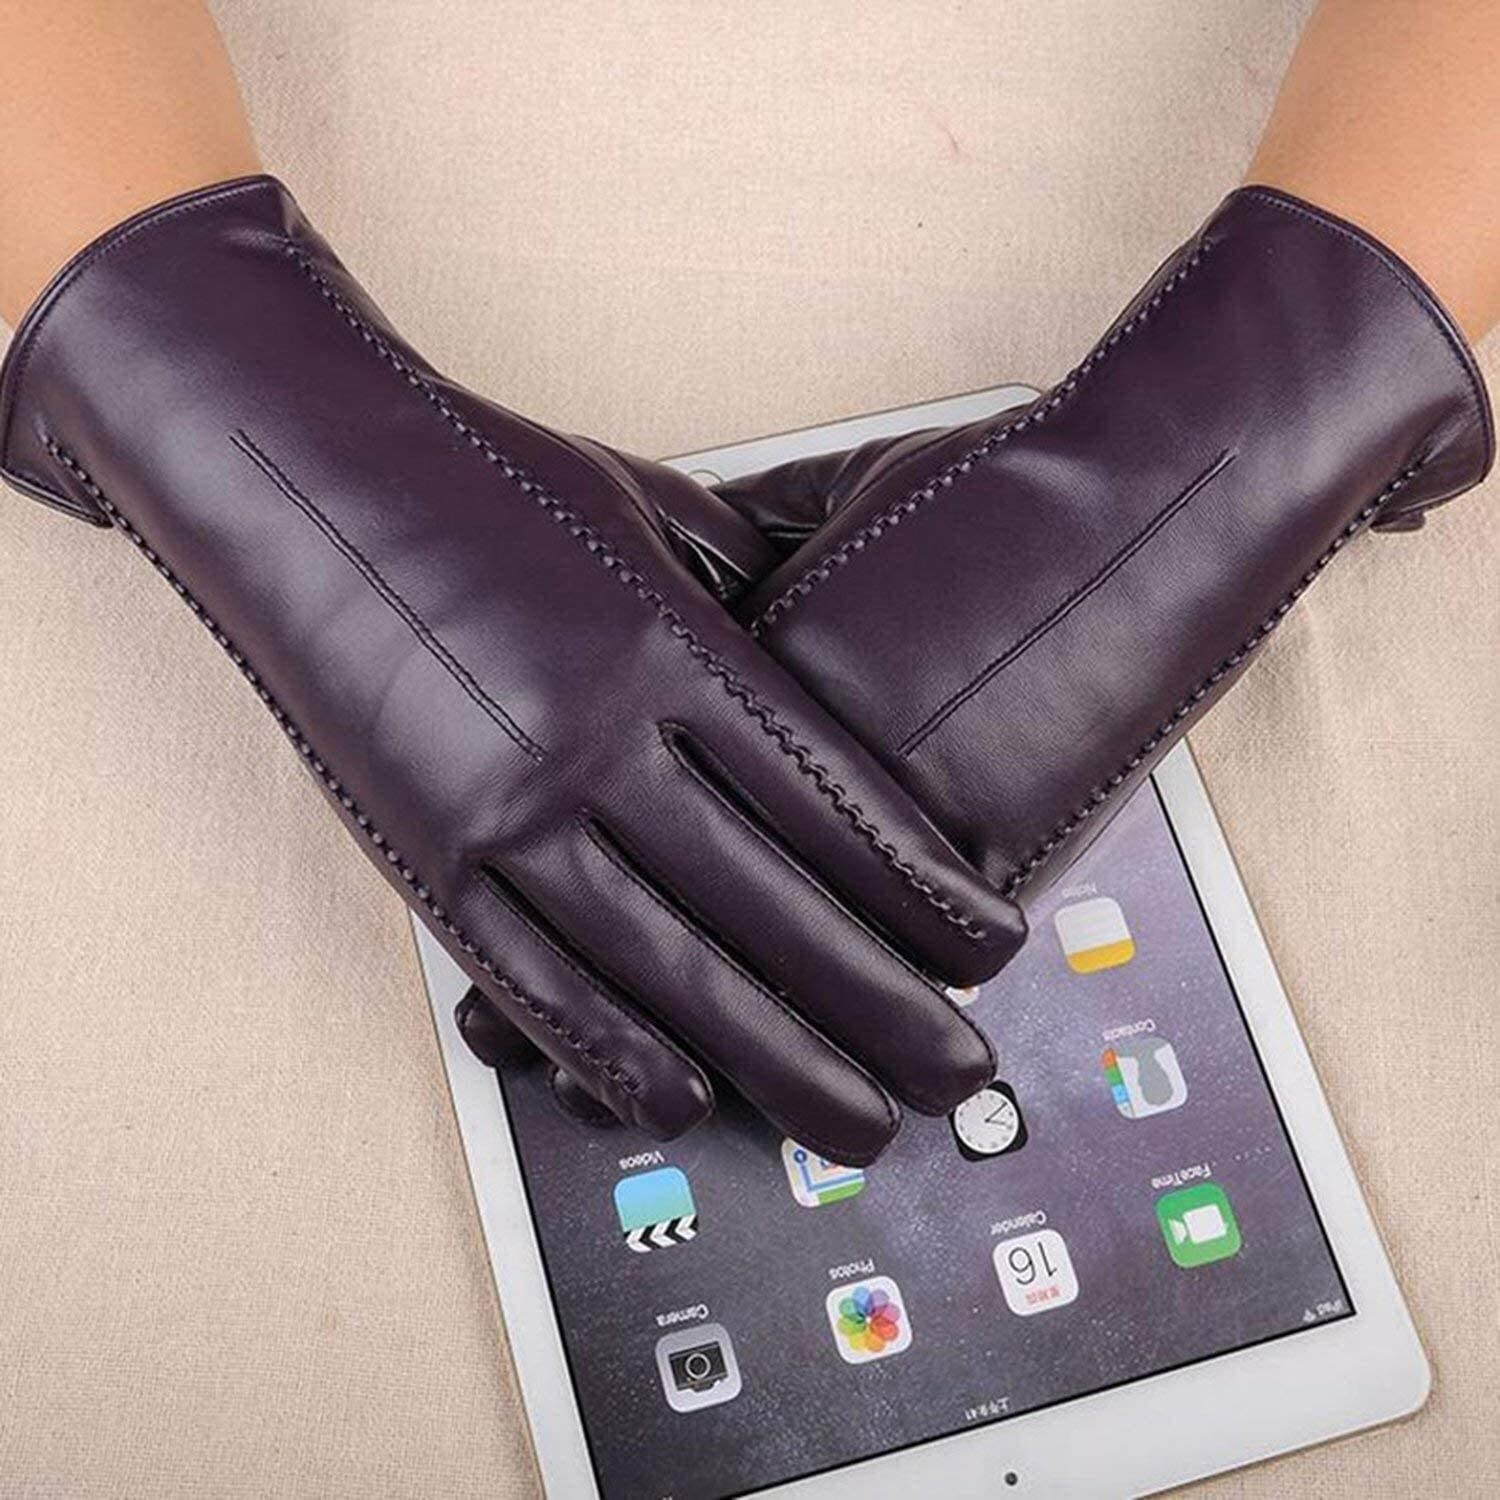 Samantha Warm Gloves Gloves Leather Female Winter Plus Coral Velvet Warm Black Glove Women Driving Touch Phone Screen Glove Mittens (Color : Purple, Size : One Size)